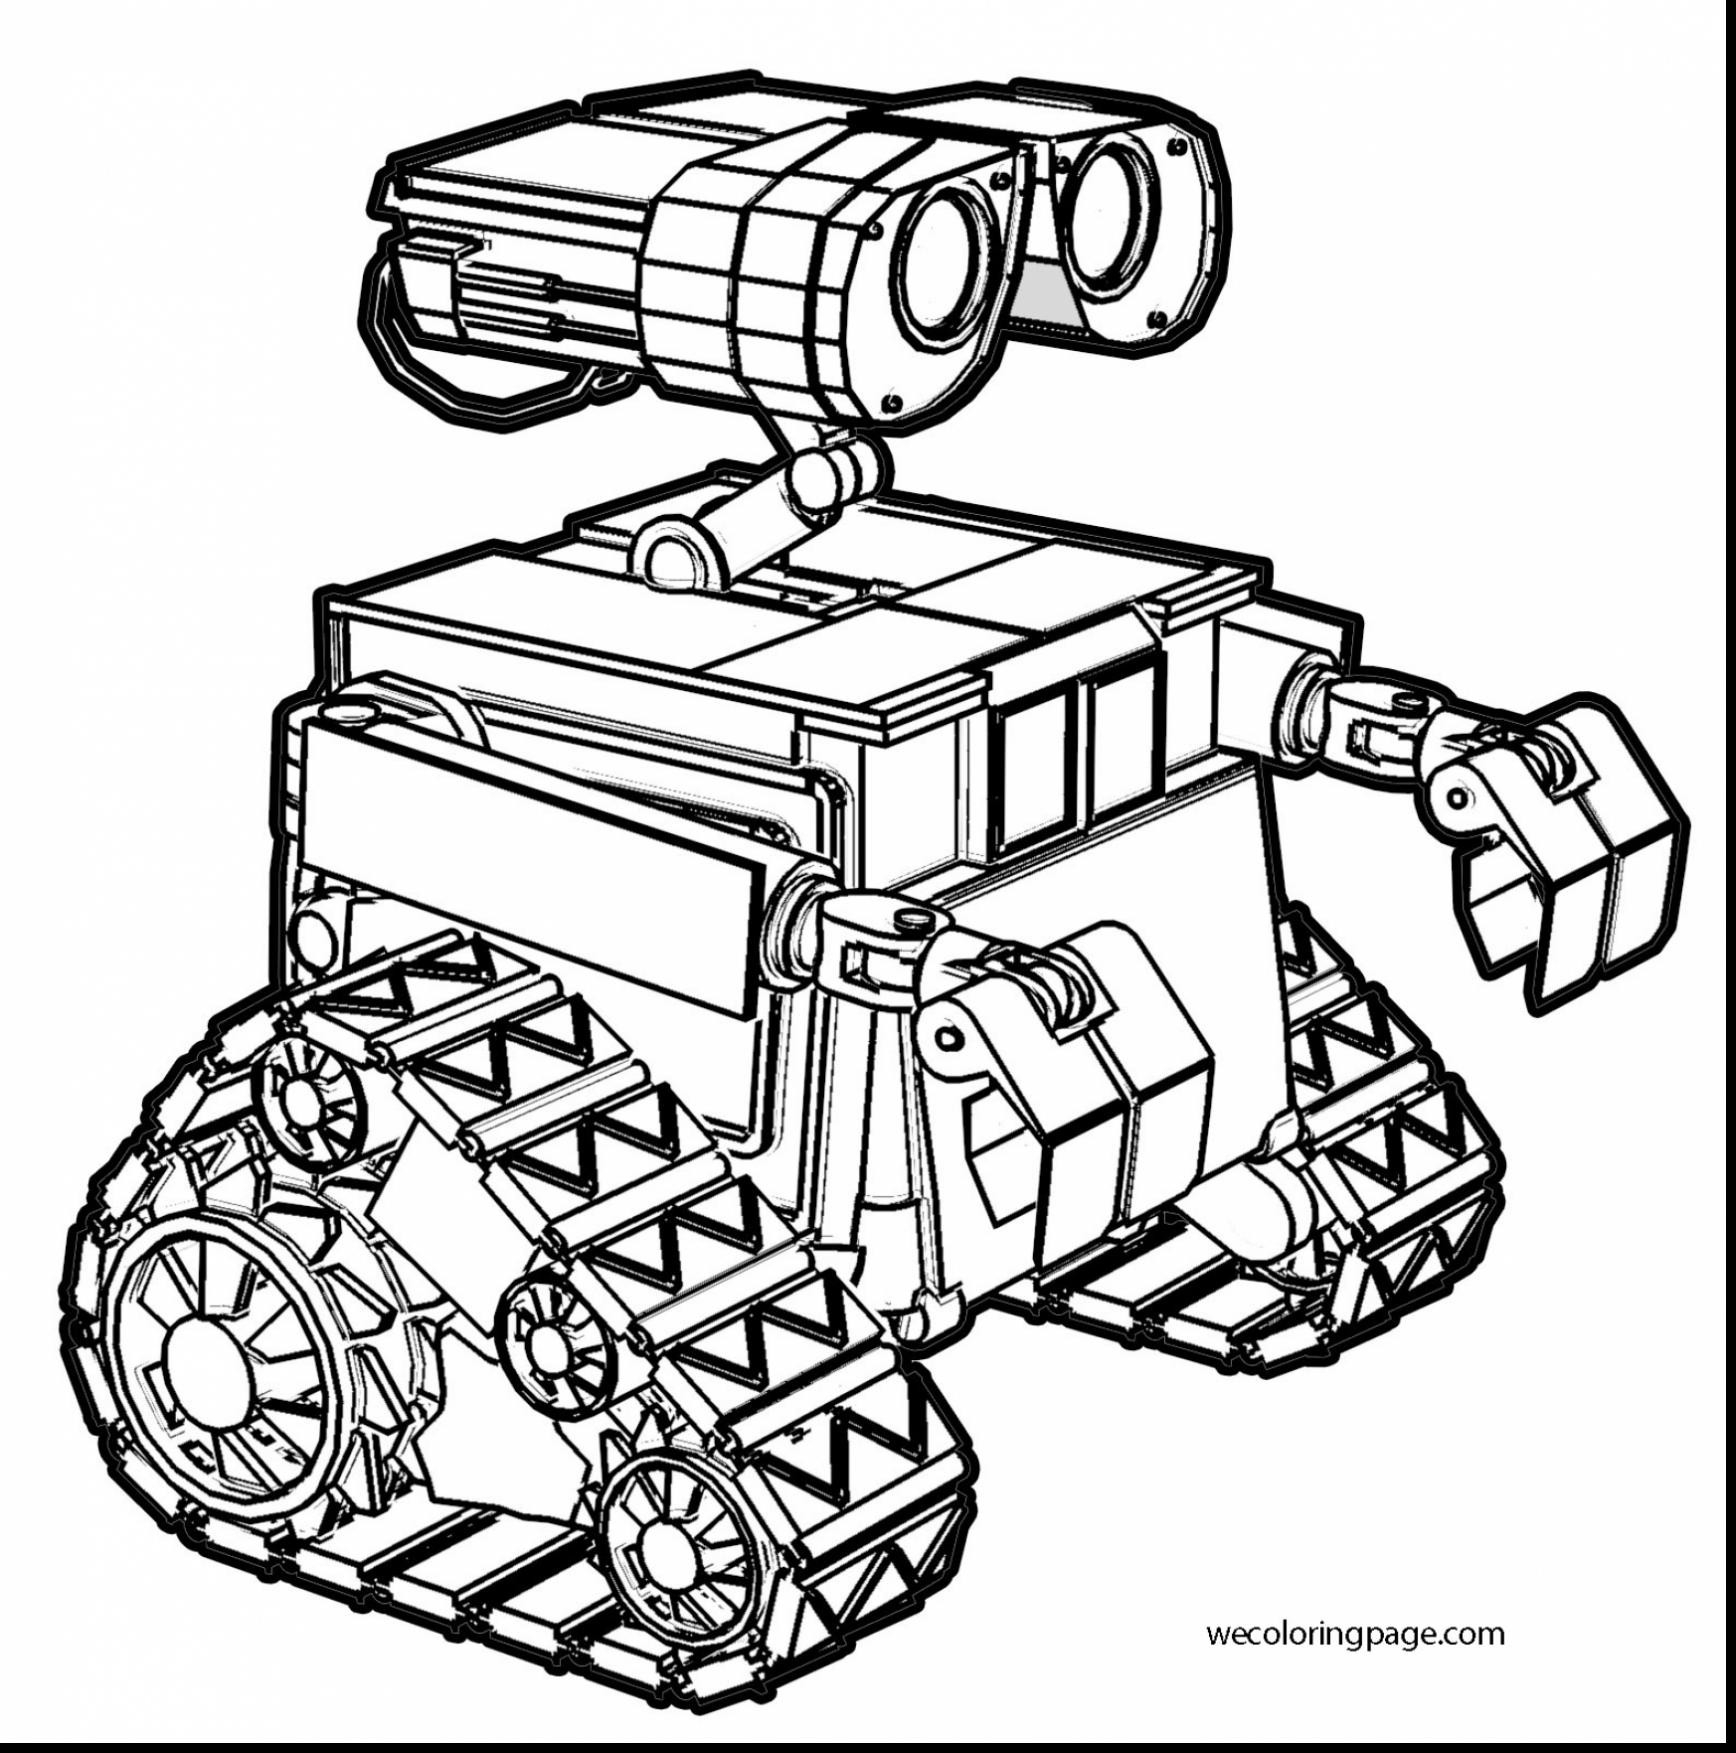 1736x1753 Best Of Wall E And Eve Coloring Pages For Kids Unique Spectacular